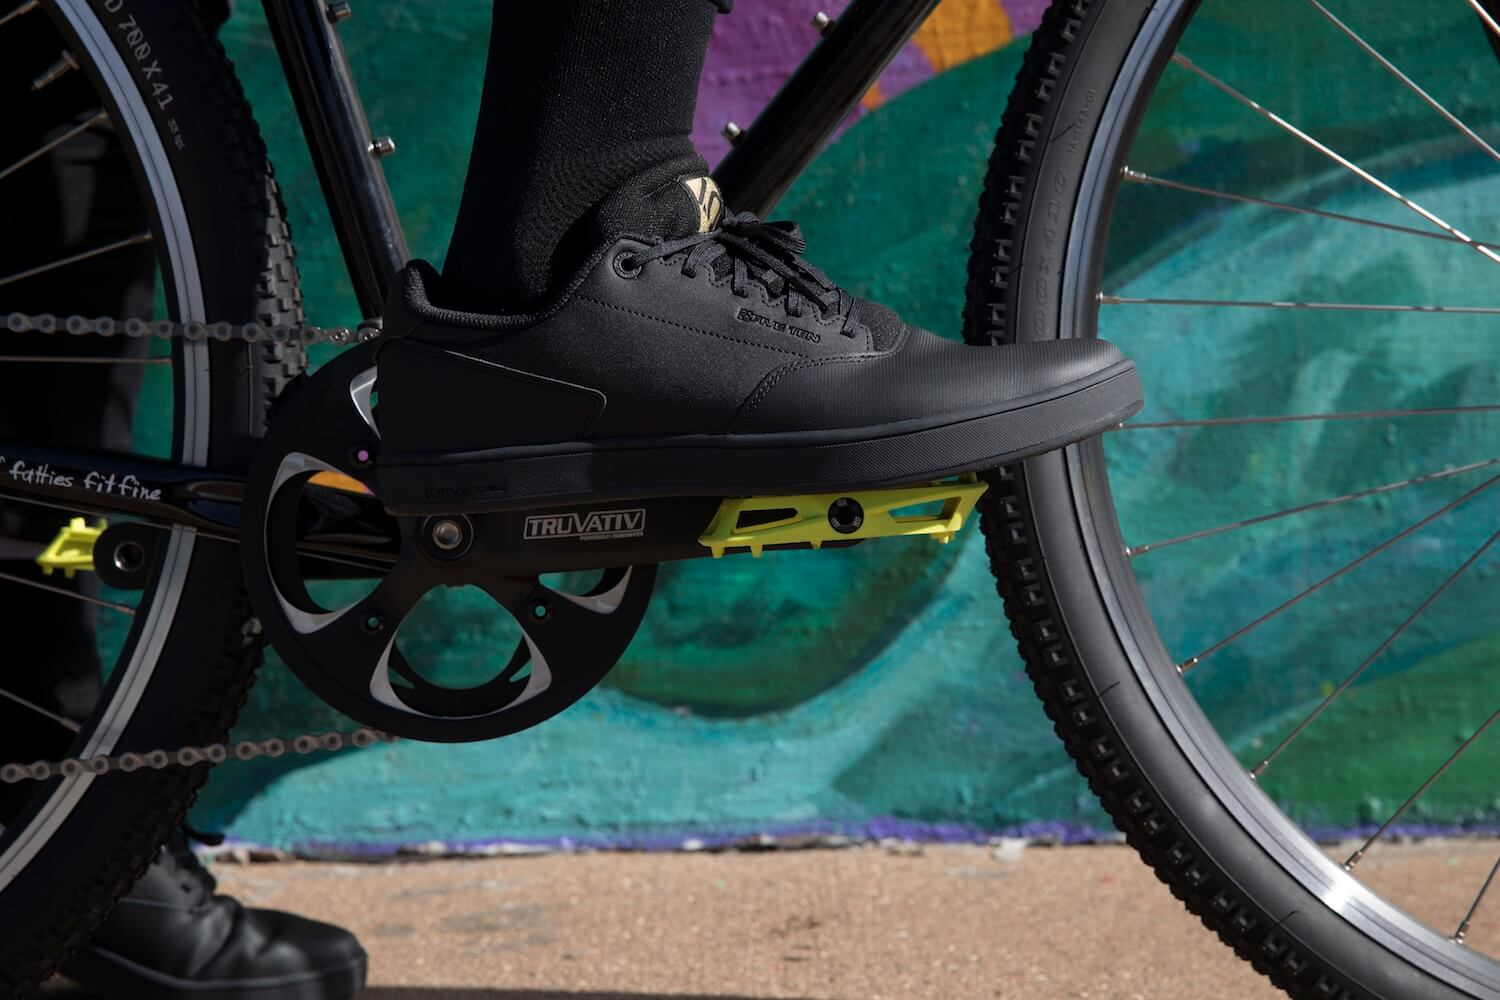 The iSSi Thump pedal has a concave shape for maximum comfort and security.